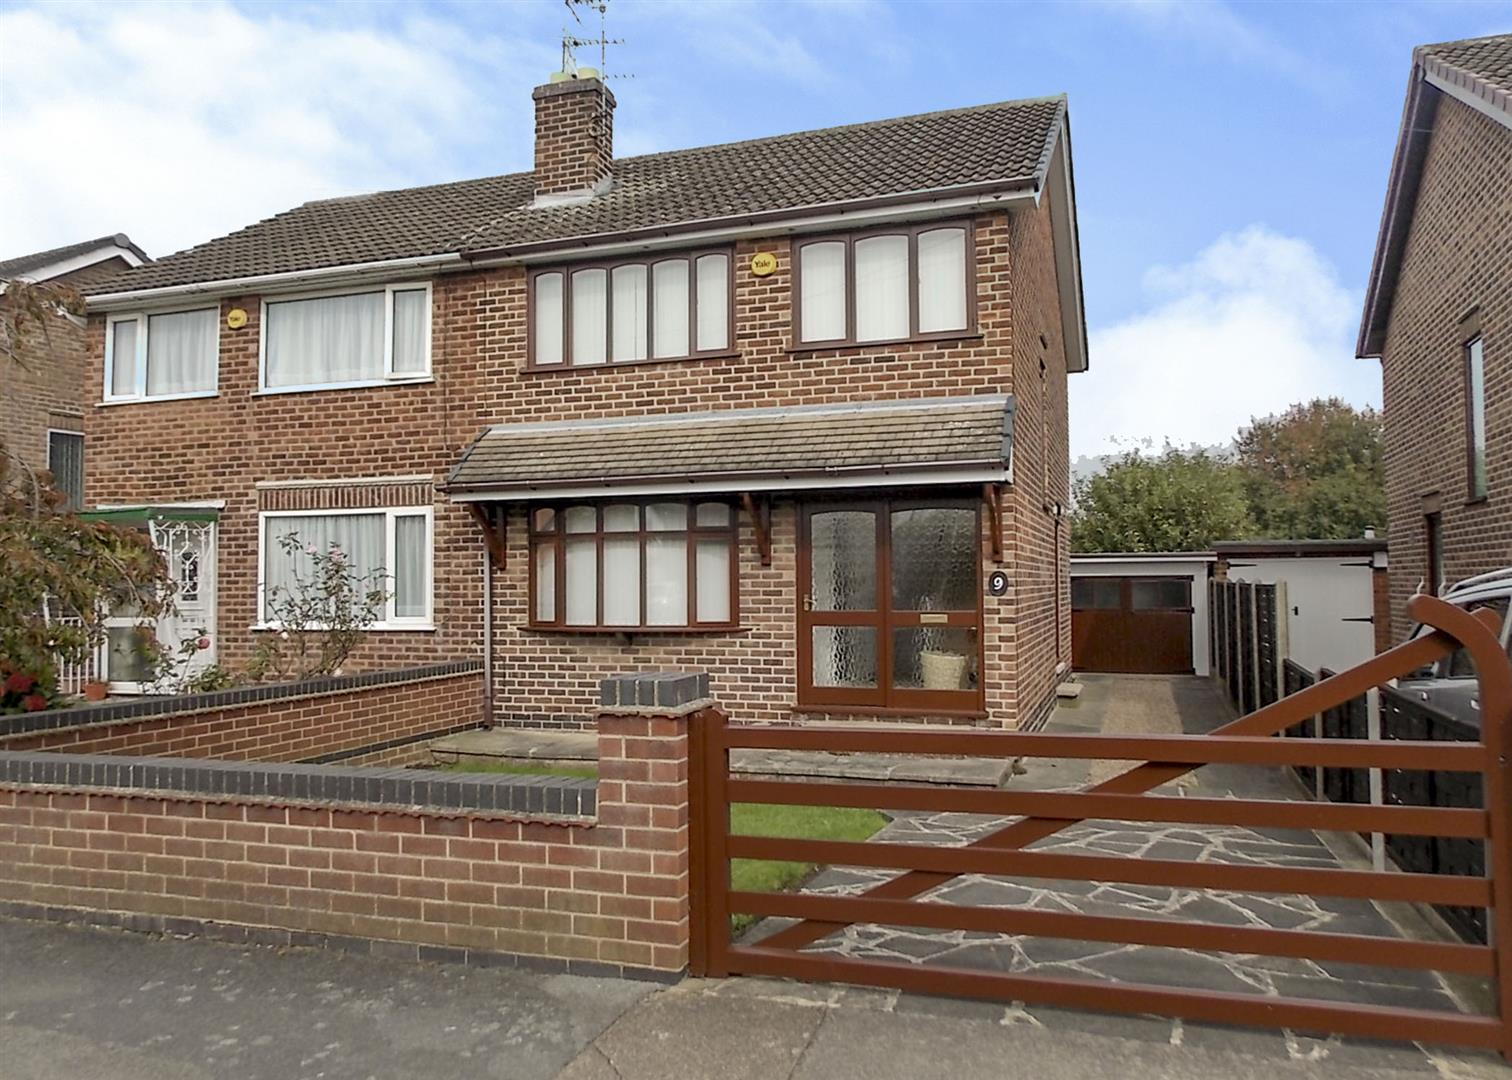 3 Bedrooms Semi Detached House for sale in Collingwood Road, Long Eaton